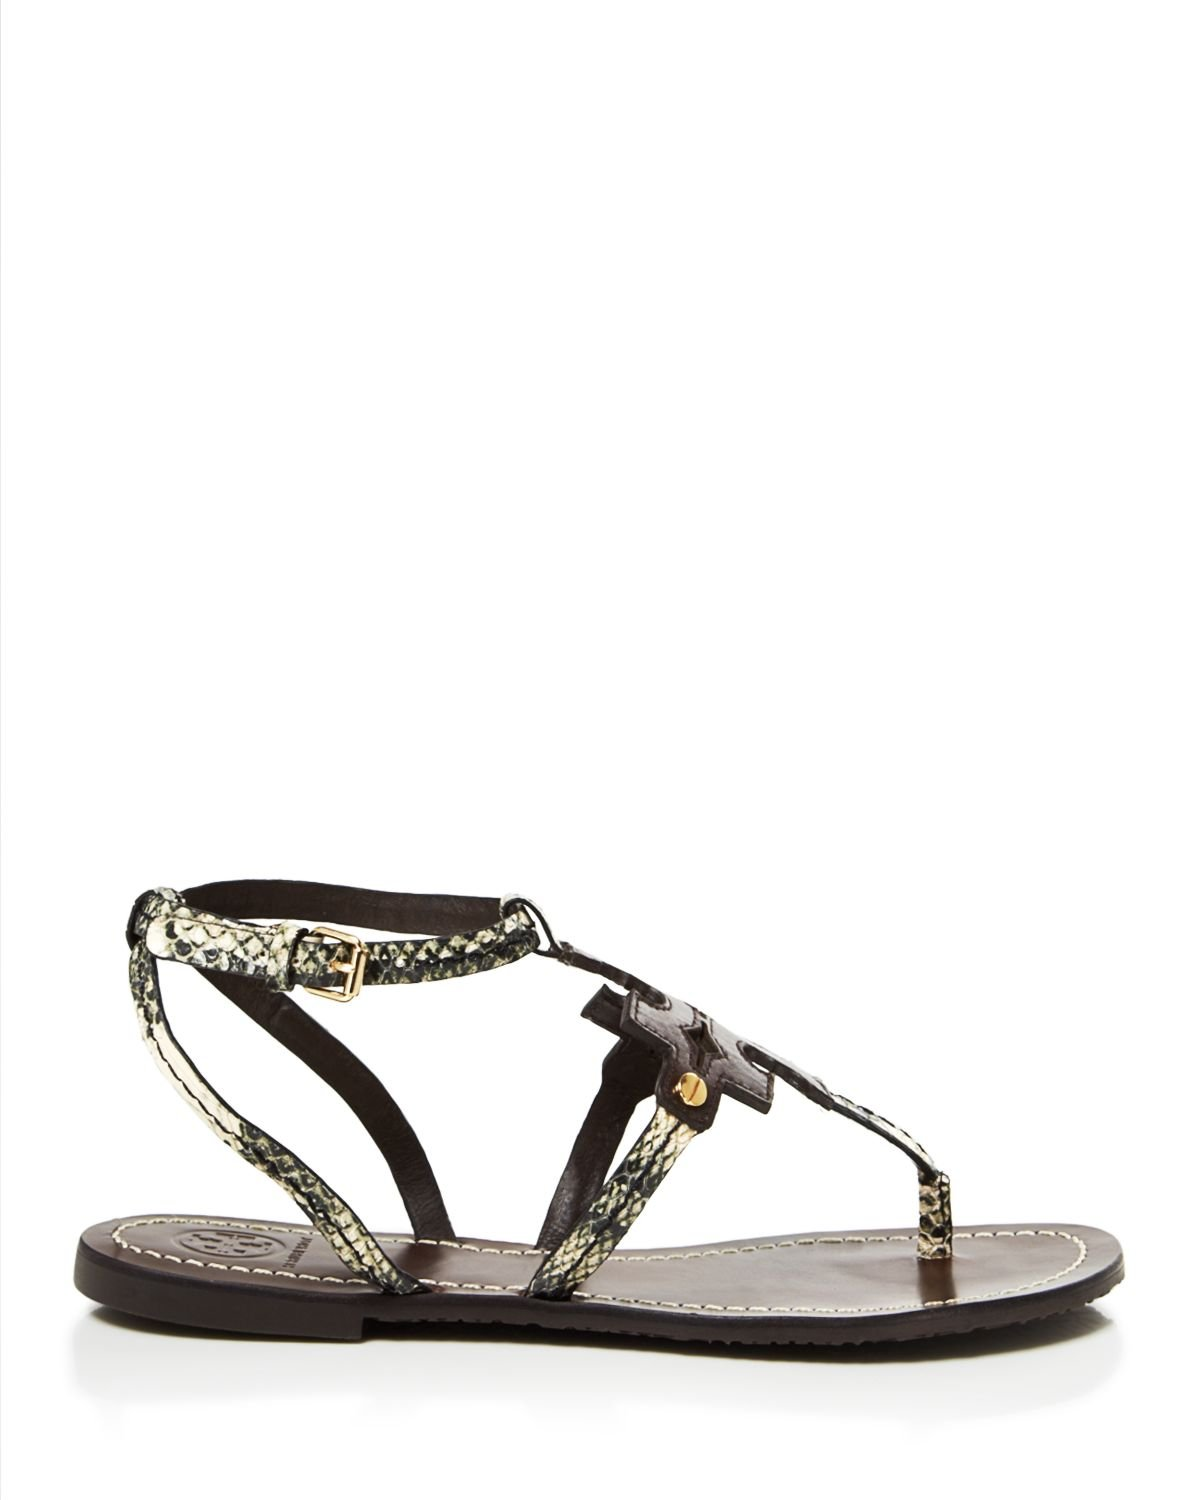 f1cb0cb58 discount tory burch phoebe sandals 872b5 2f692  canada lyst tory burch flat  thong sandals chandler in black b9b80 b23b9